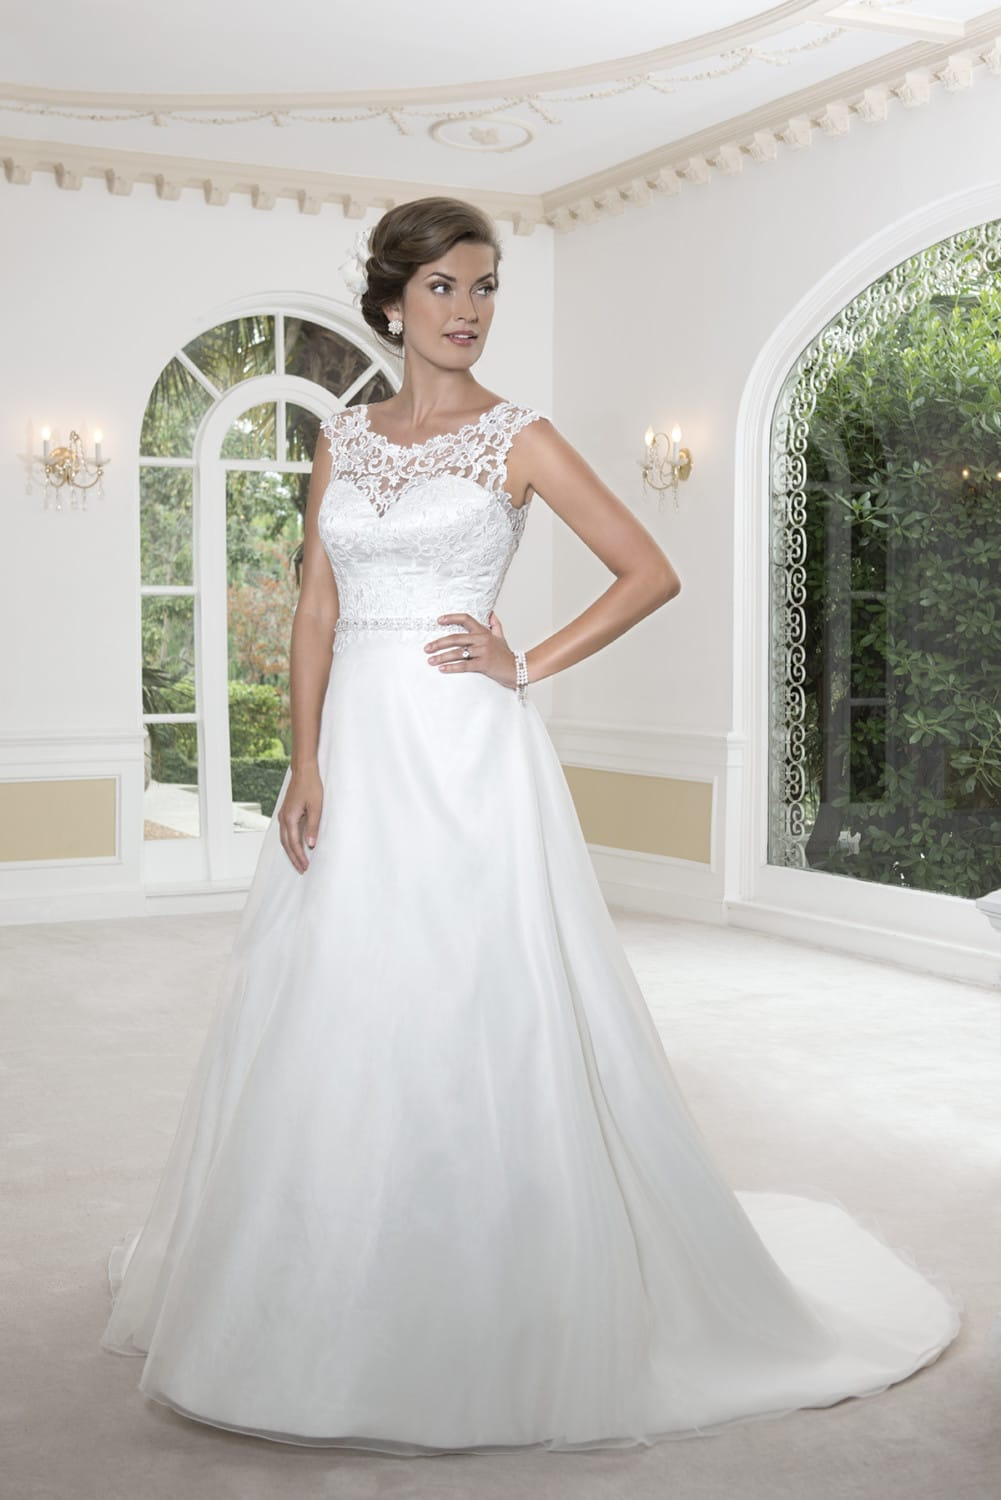 Venus tara wedding dress sell my wedding dress online for Where to sell wedding dresses